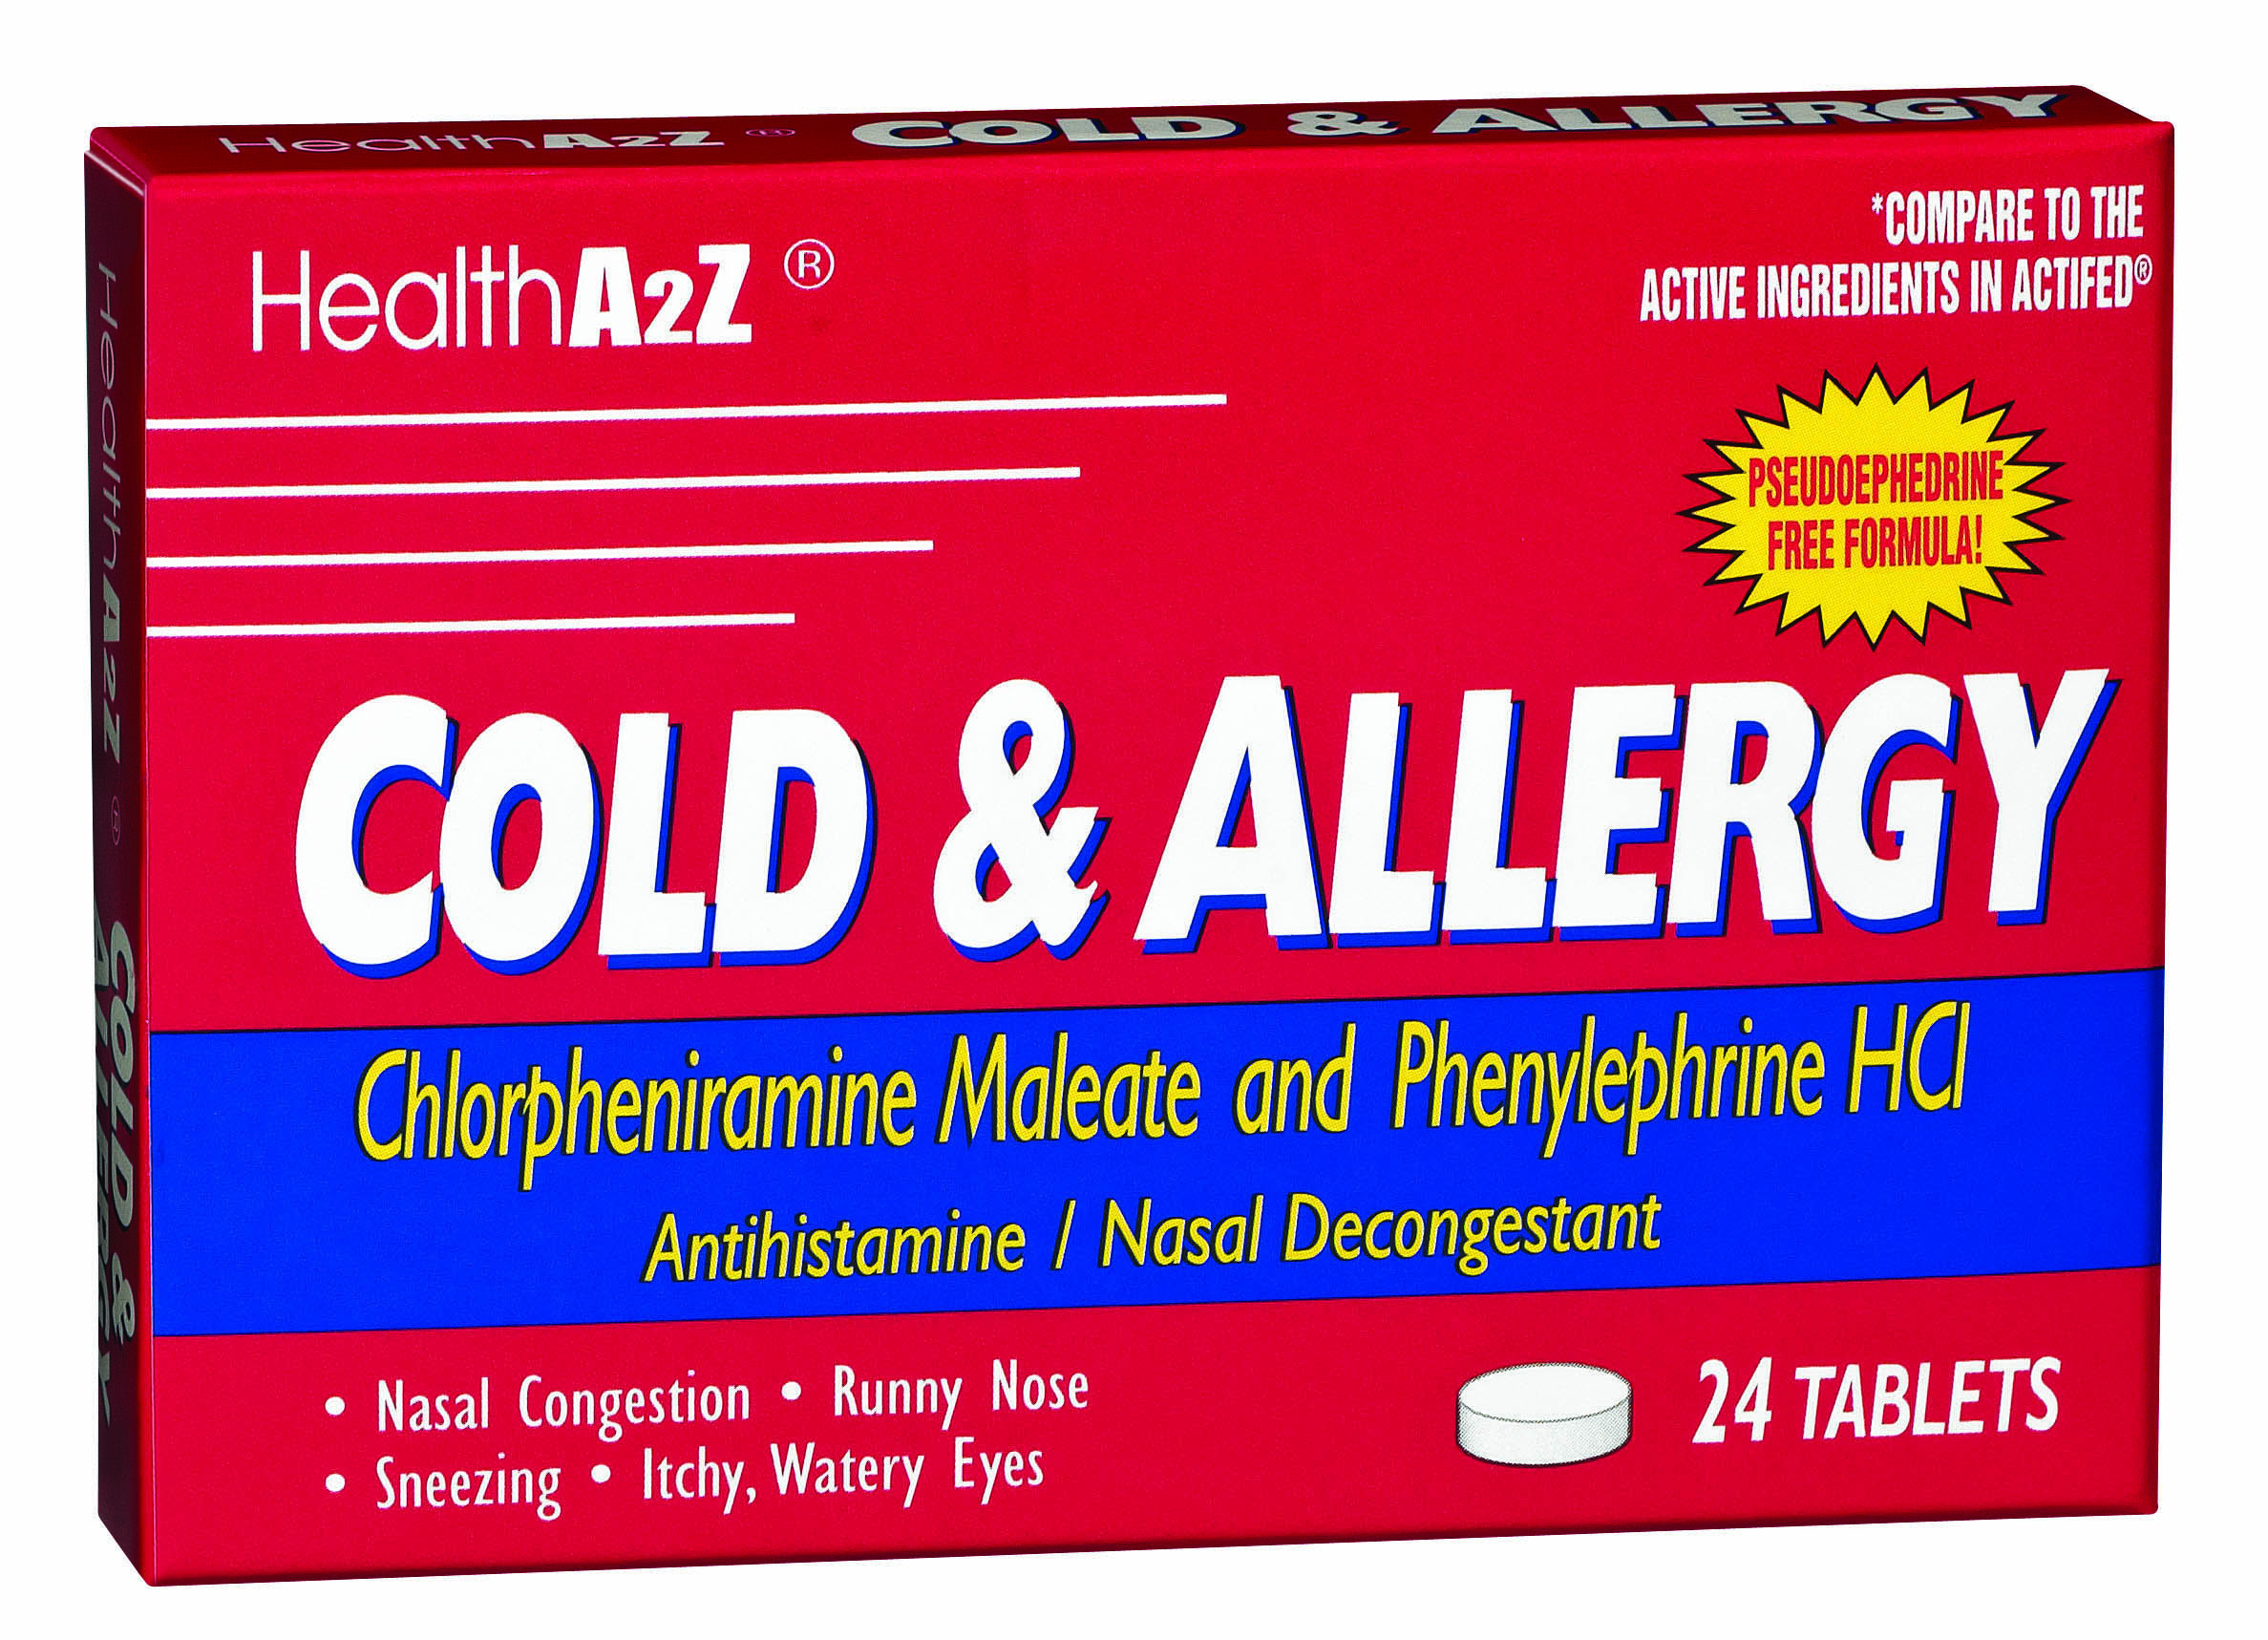 HealthA2Z® Cold & Allergy Medication